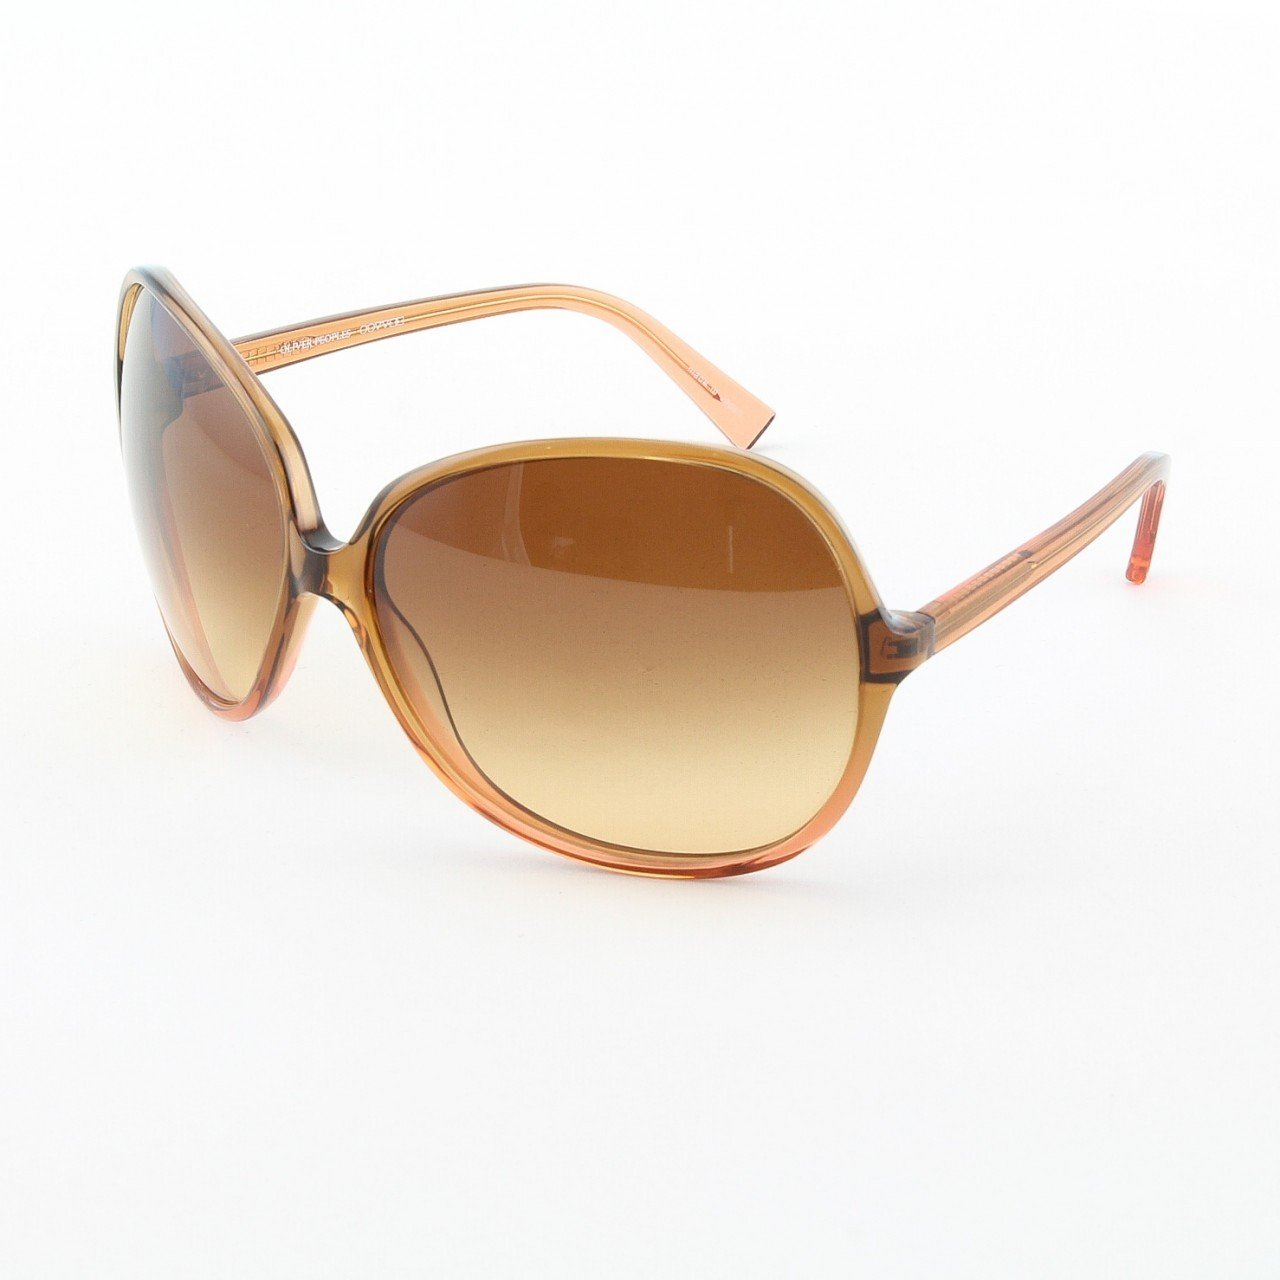 Oliver Peoples Chelsea Sunglasses Col. SFG Honey with Light Brown Gradient Lenses